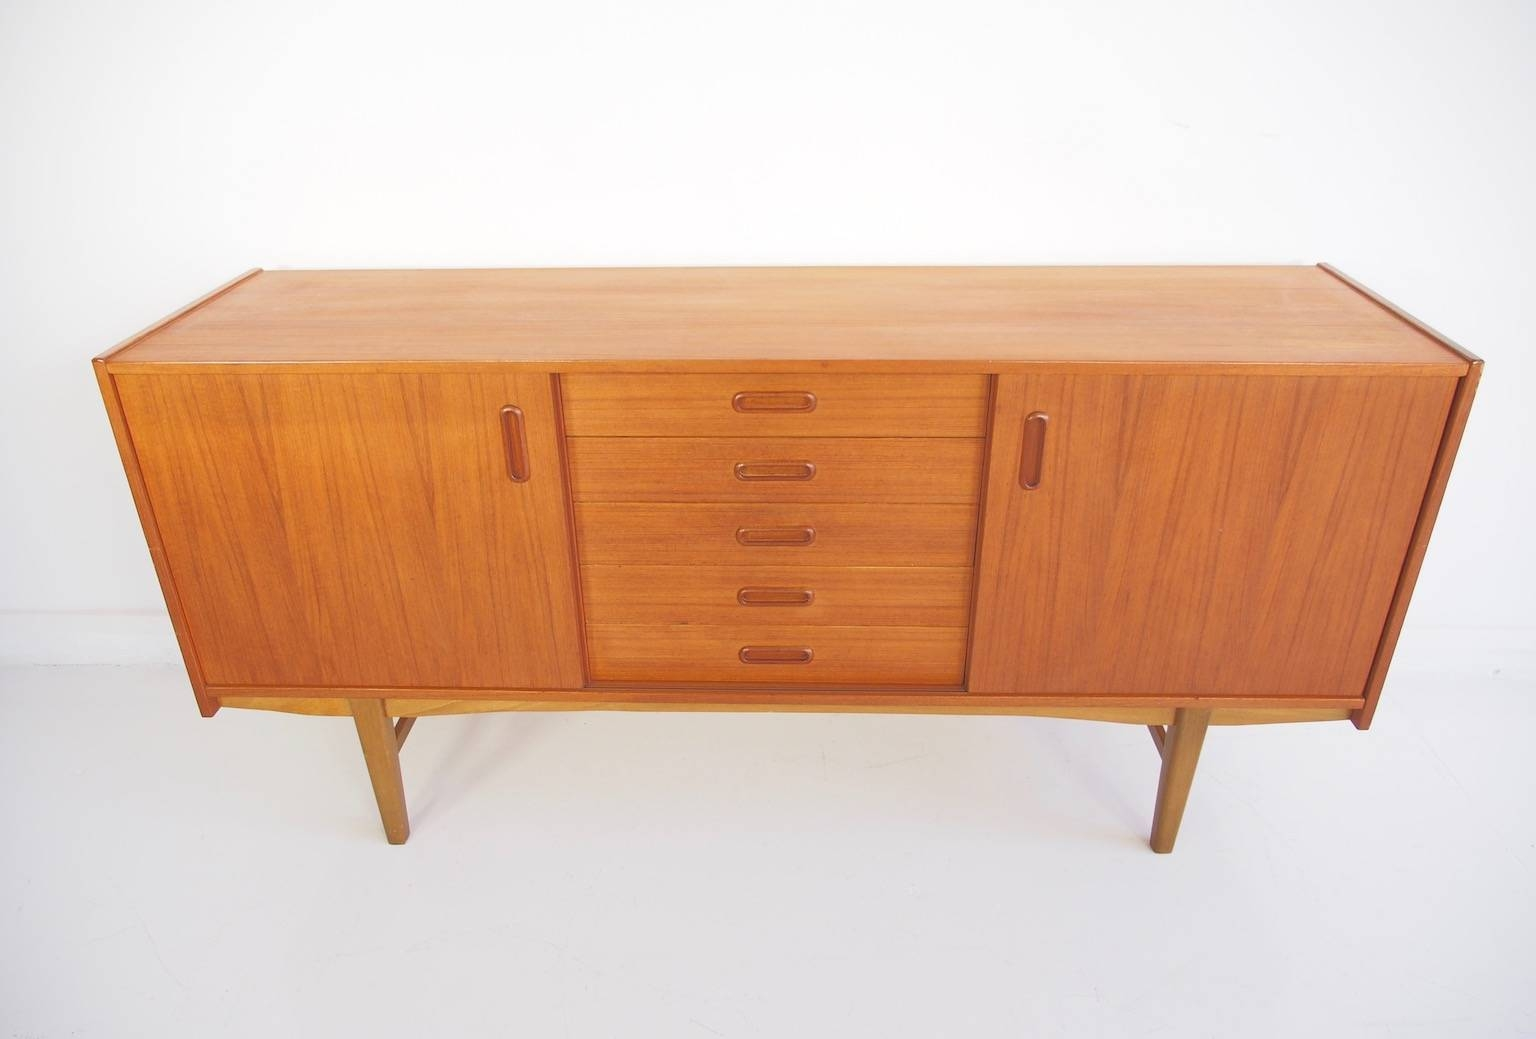 Scandinavian Modern Teak Sideboard With Shelves And Drawers, 1960S With Regard To Scandinavian Sideboards (View 7 of 15)